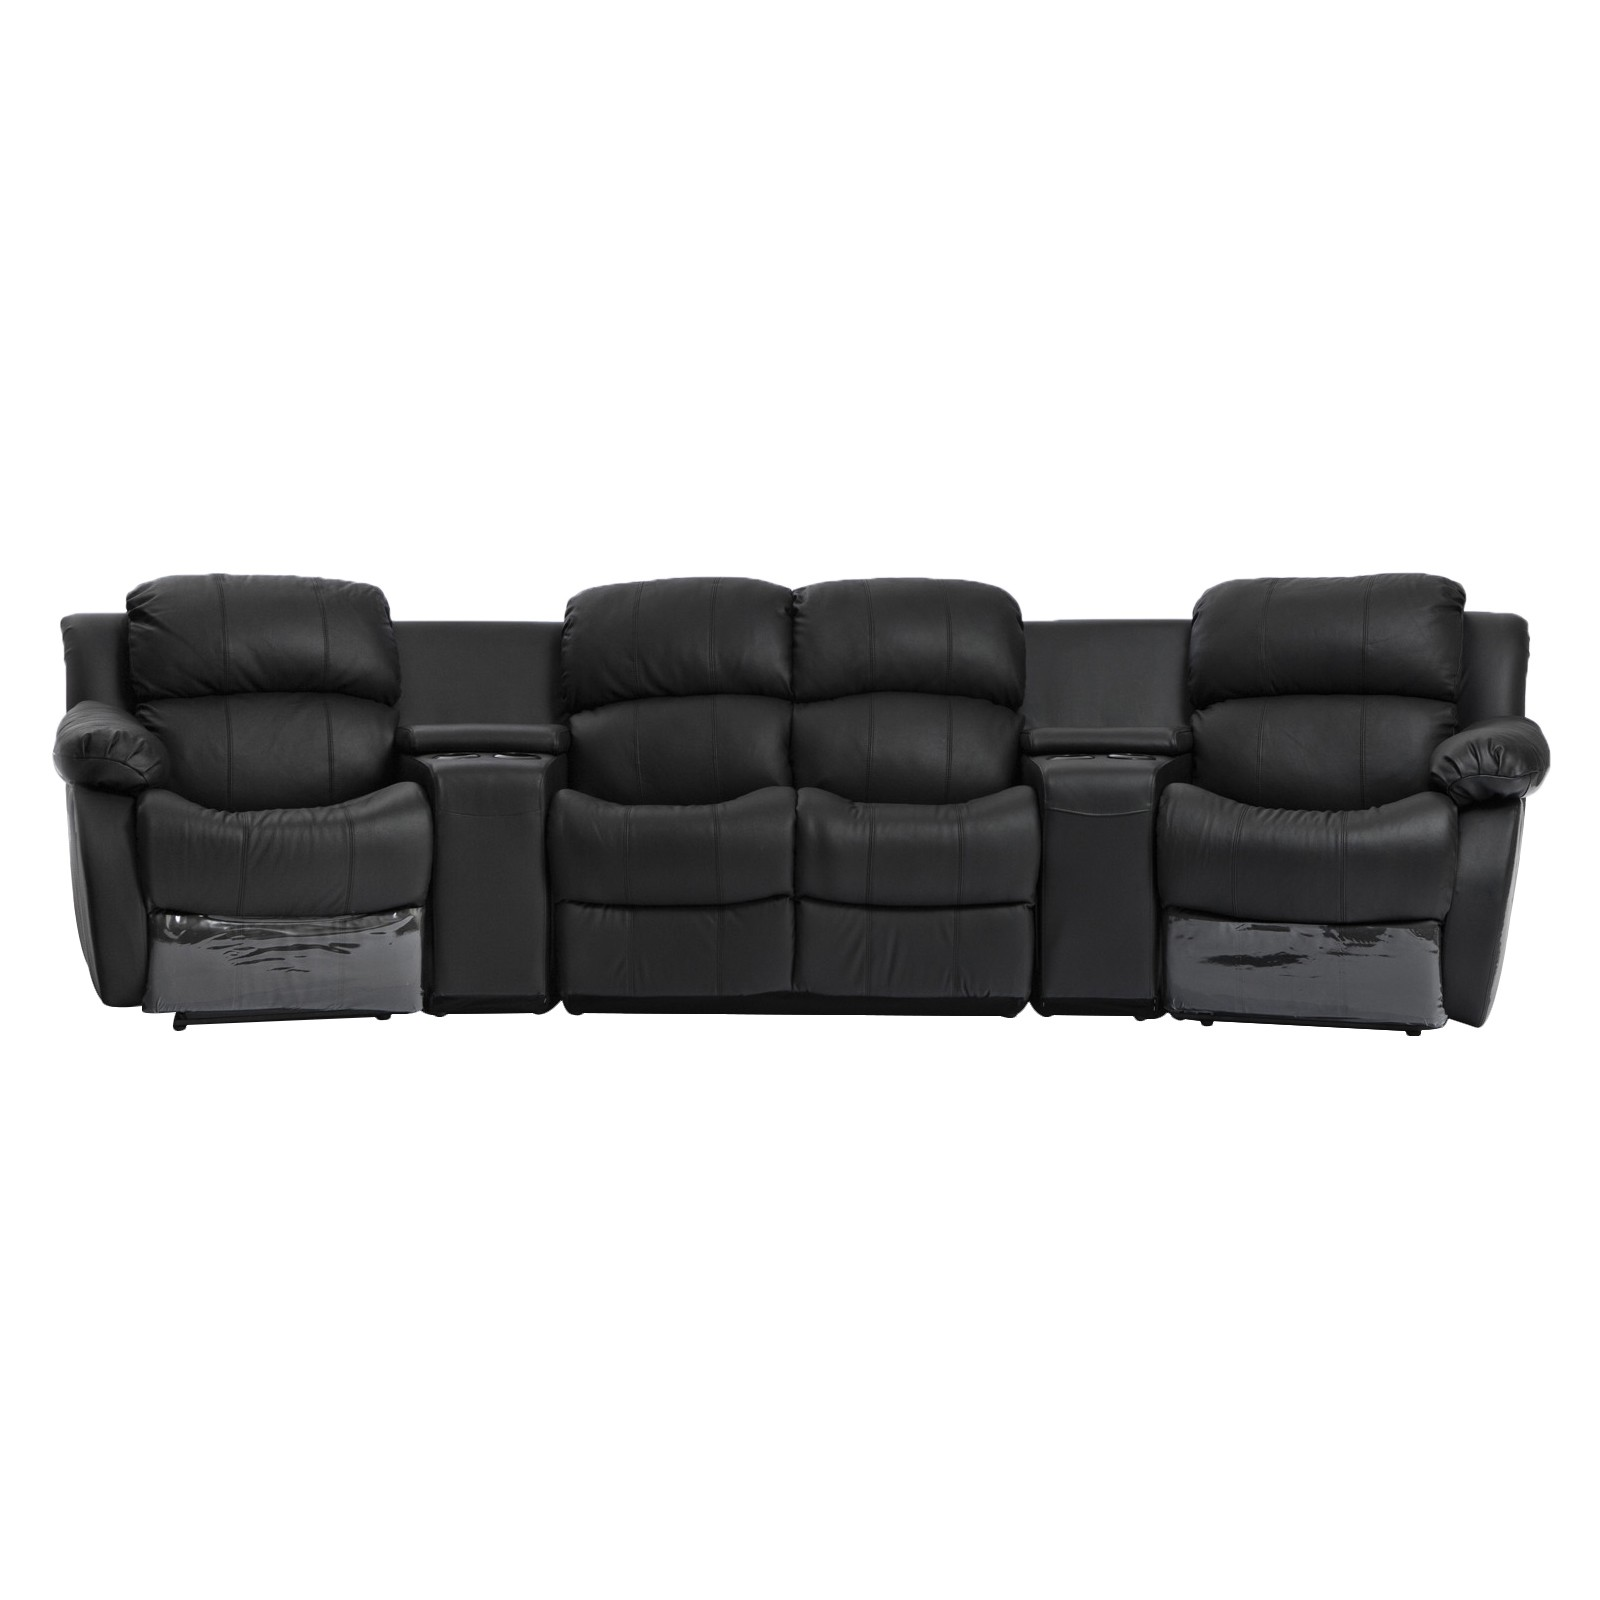 Sofa Bed Home Theater: Nikki Black Leather 4 Seater Home Theatre Lounge Suite 4